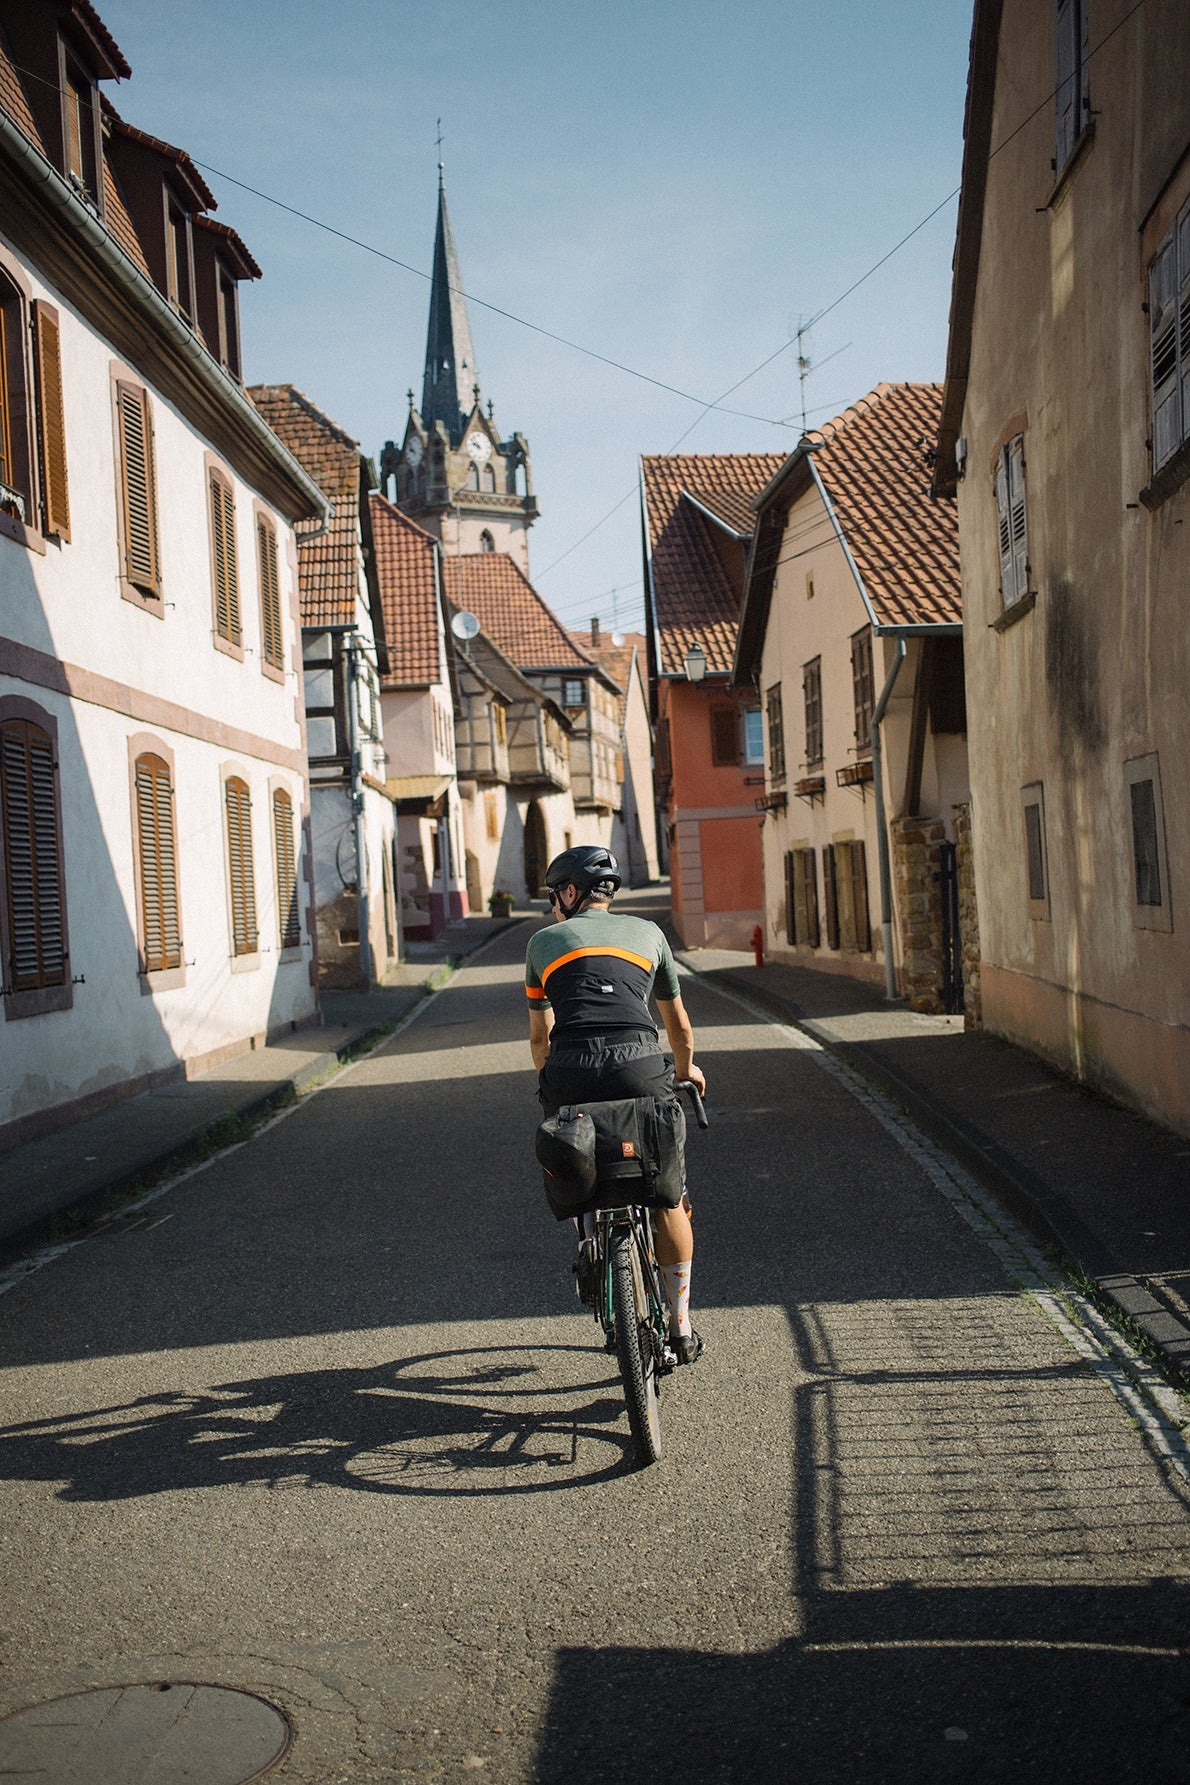 Bikepacking and The Beauty of Discovery